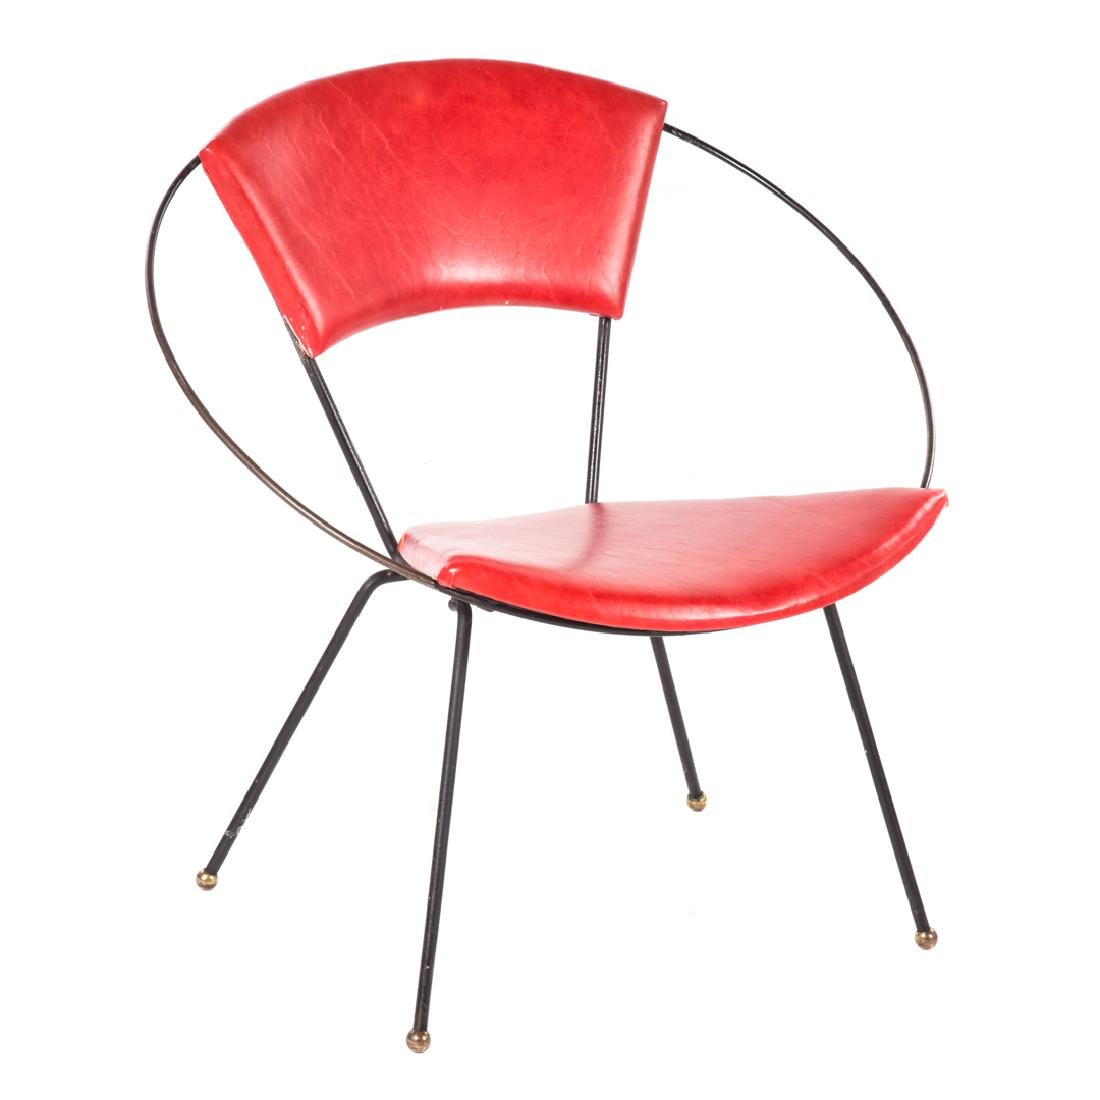 Tony Paul Mid-Century Modern steel Hoop chair,